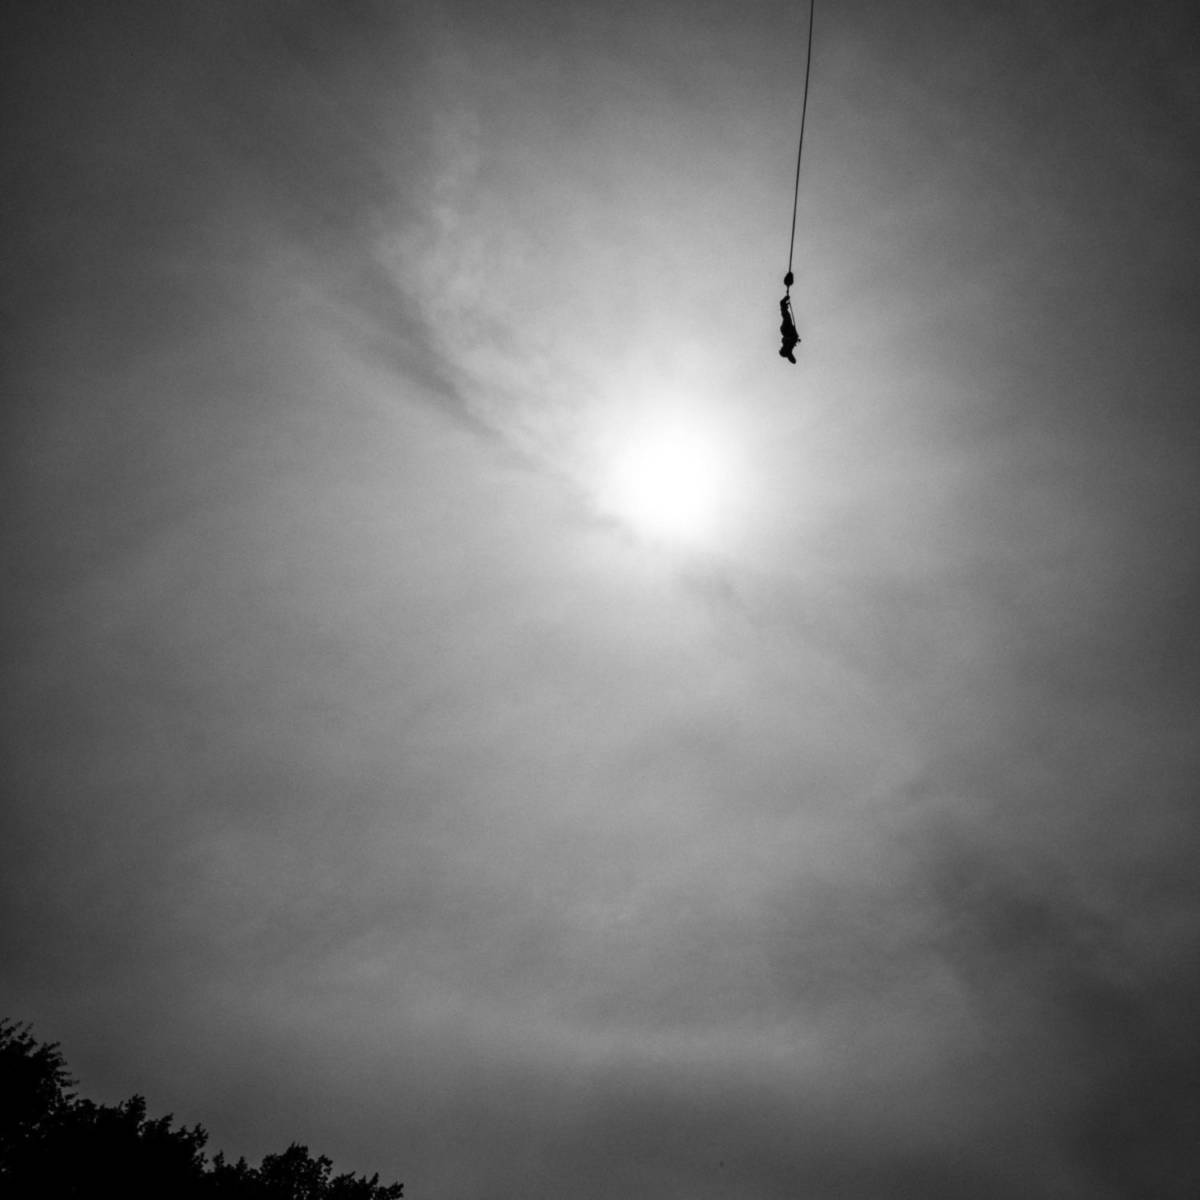 Background in Photography - Bungee Jump